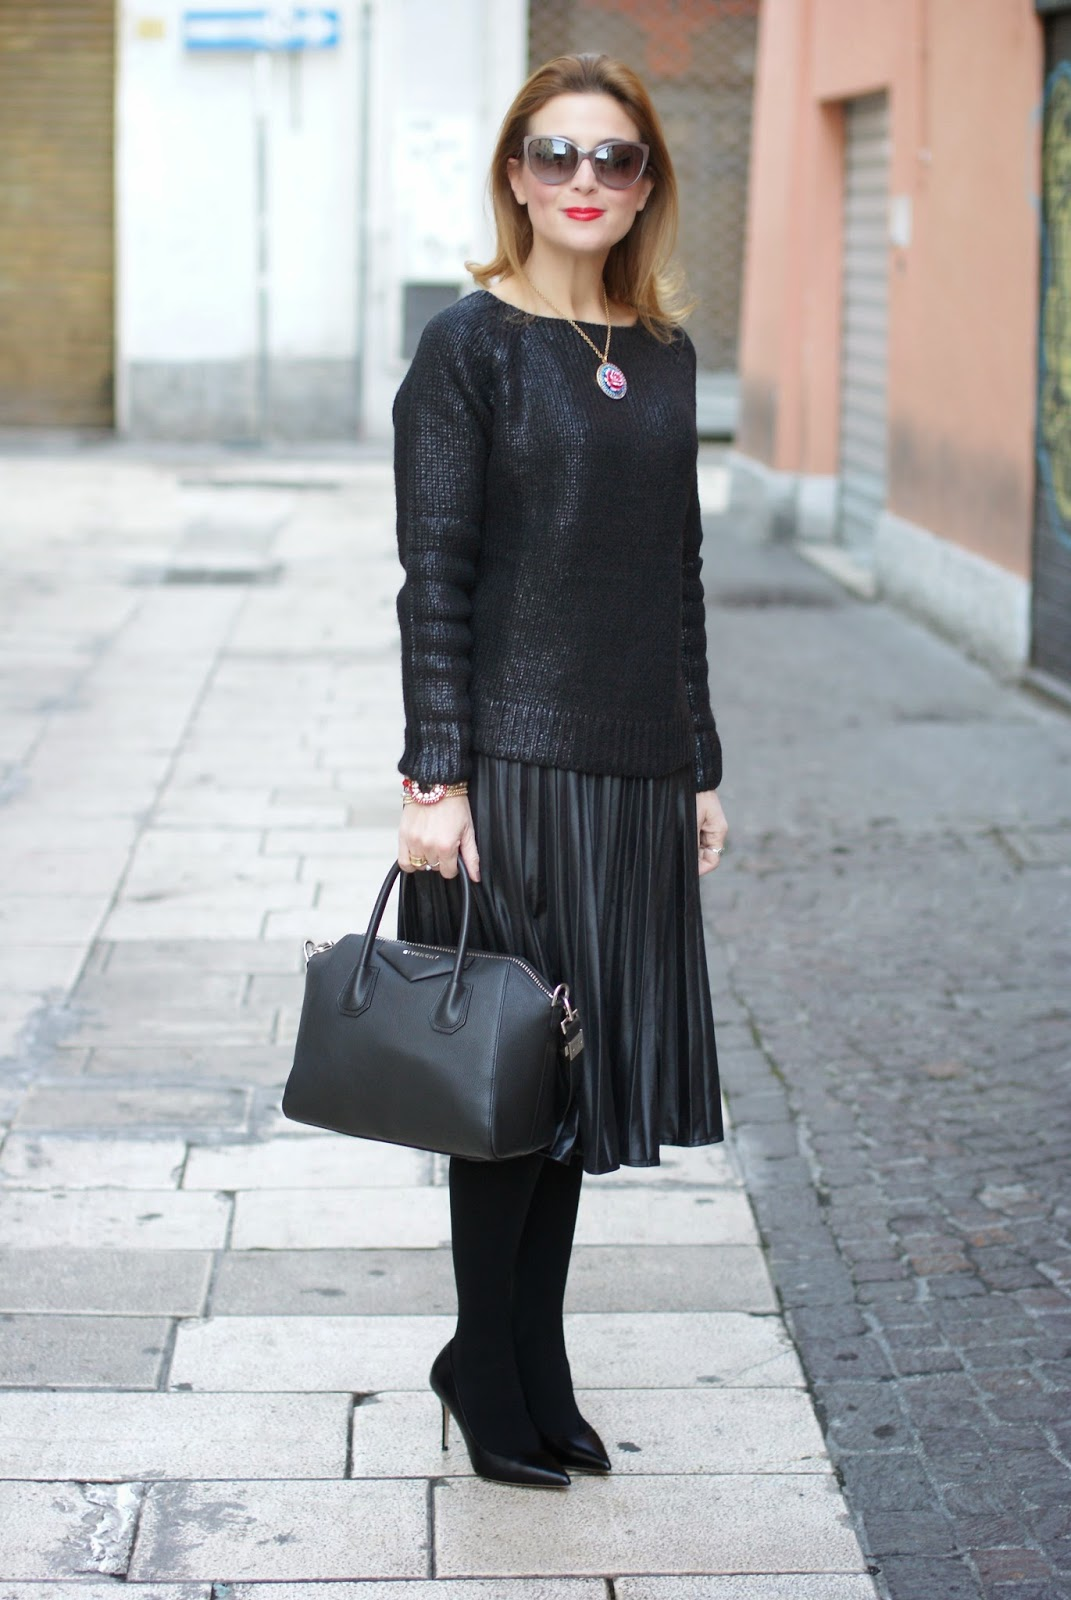 Almost all black: faux leather pleated midi skirt | Fashion and ...